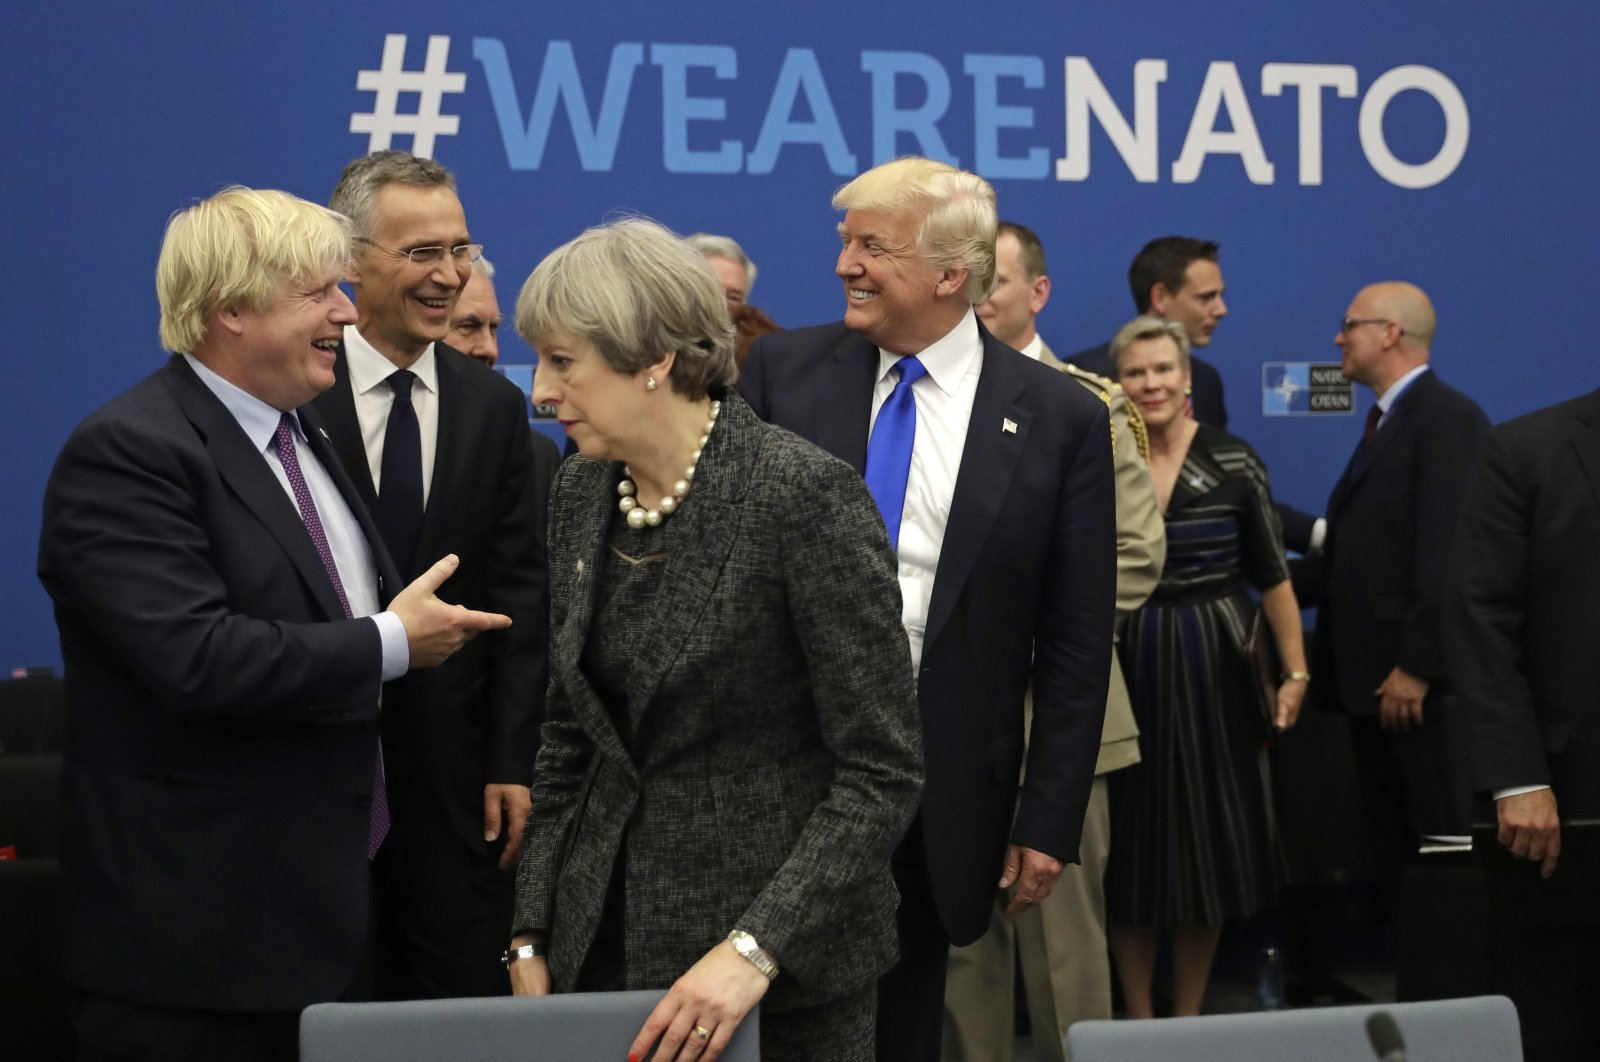 U.S. President Donald Trump jokes with Boris Johnson during a working dinner meeting at the NATO headquarters in May 25, 2017. (AP Photo)